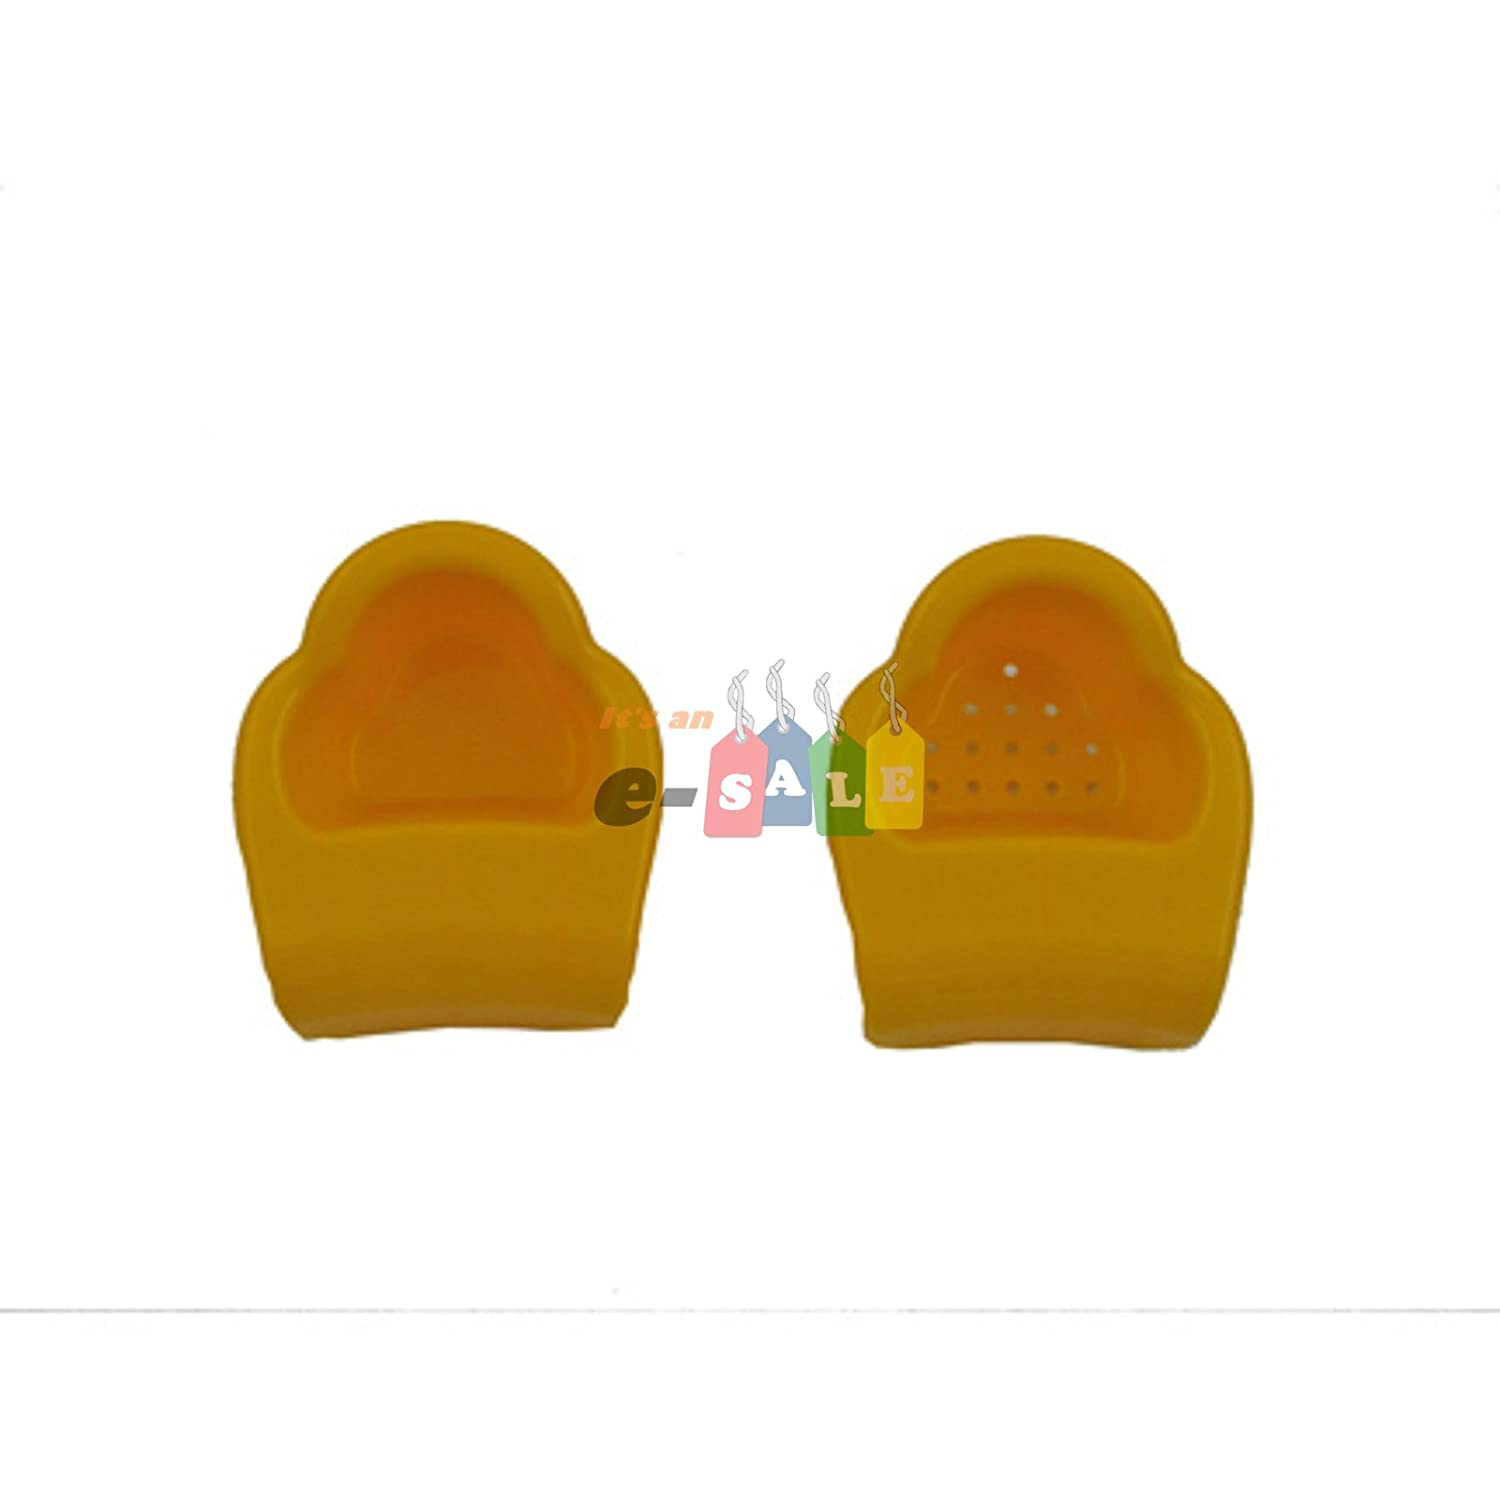 Replacement Popular Set of Two 2 Cups Price Penguin Fisher for Feet